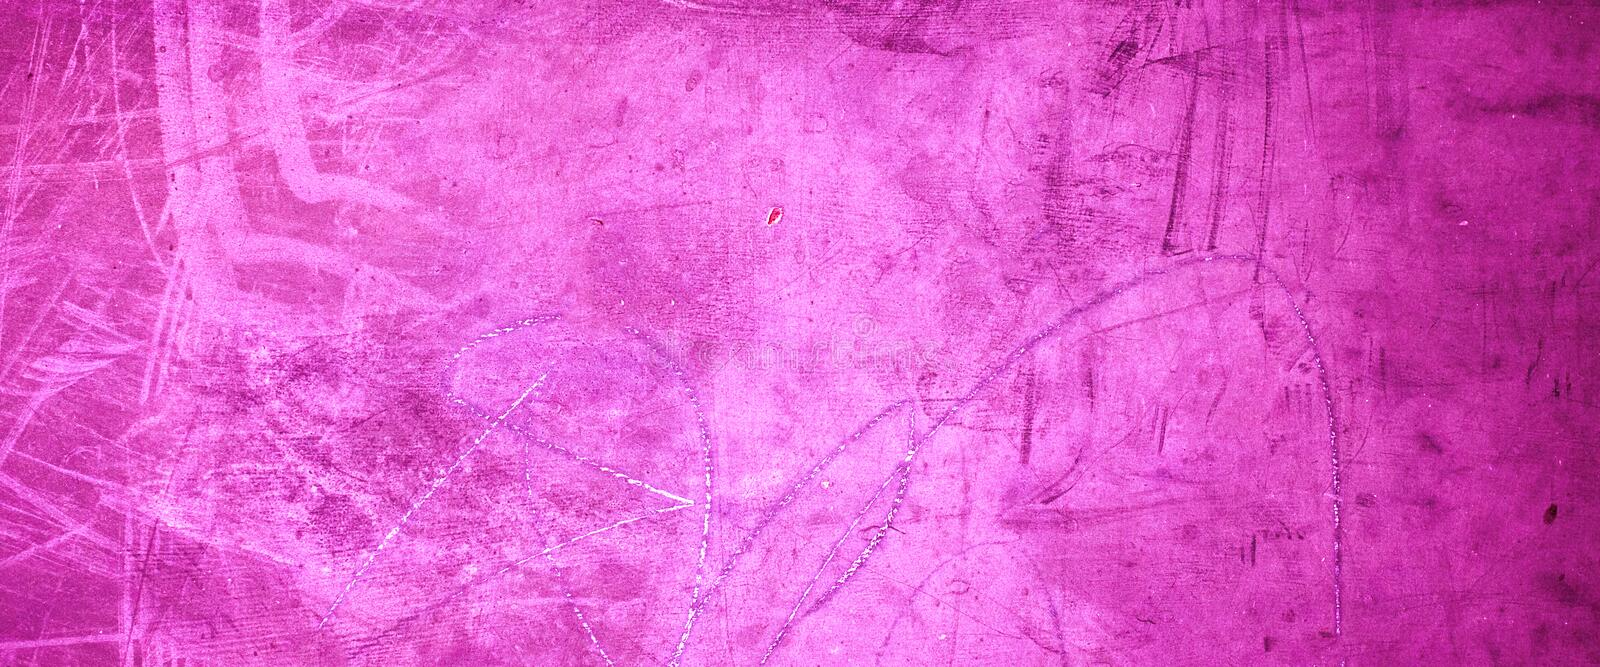 Pink grunge background texture - - Old Grungy purple wall with royalty free stock photo